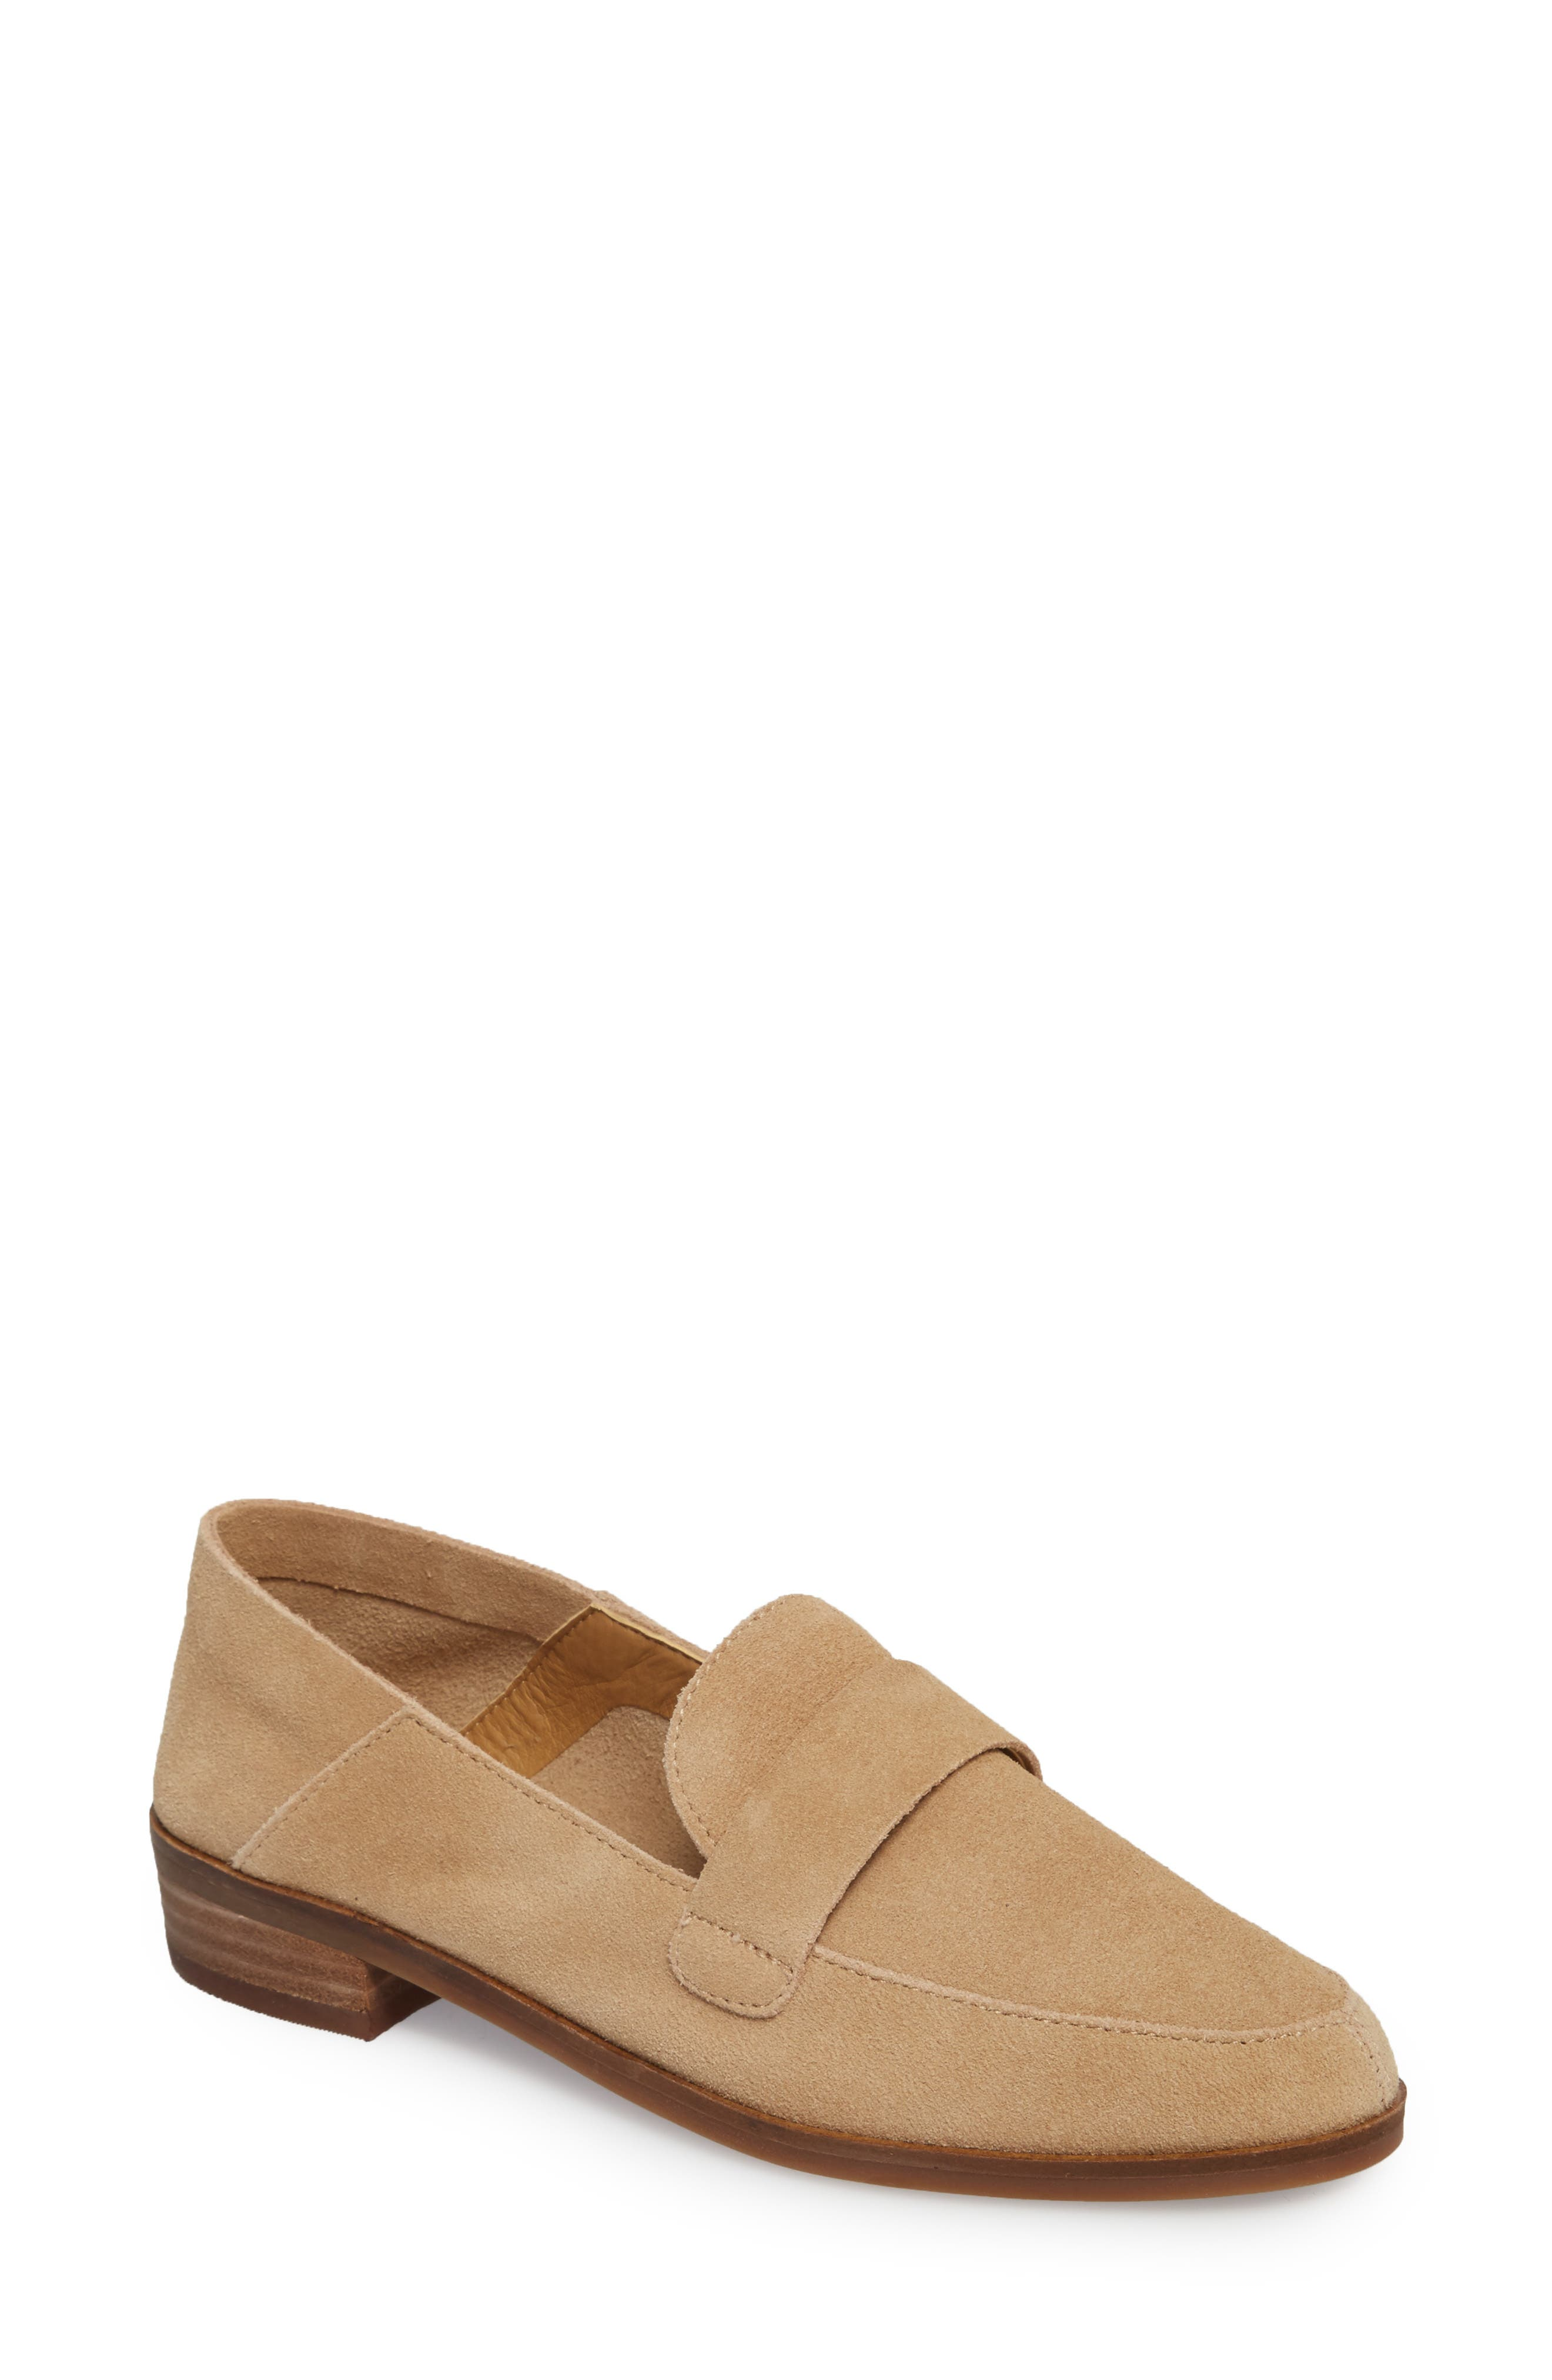 Alternate Image 1 Selected - Lucky Brand Chennie Loafer (Women)